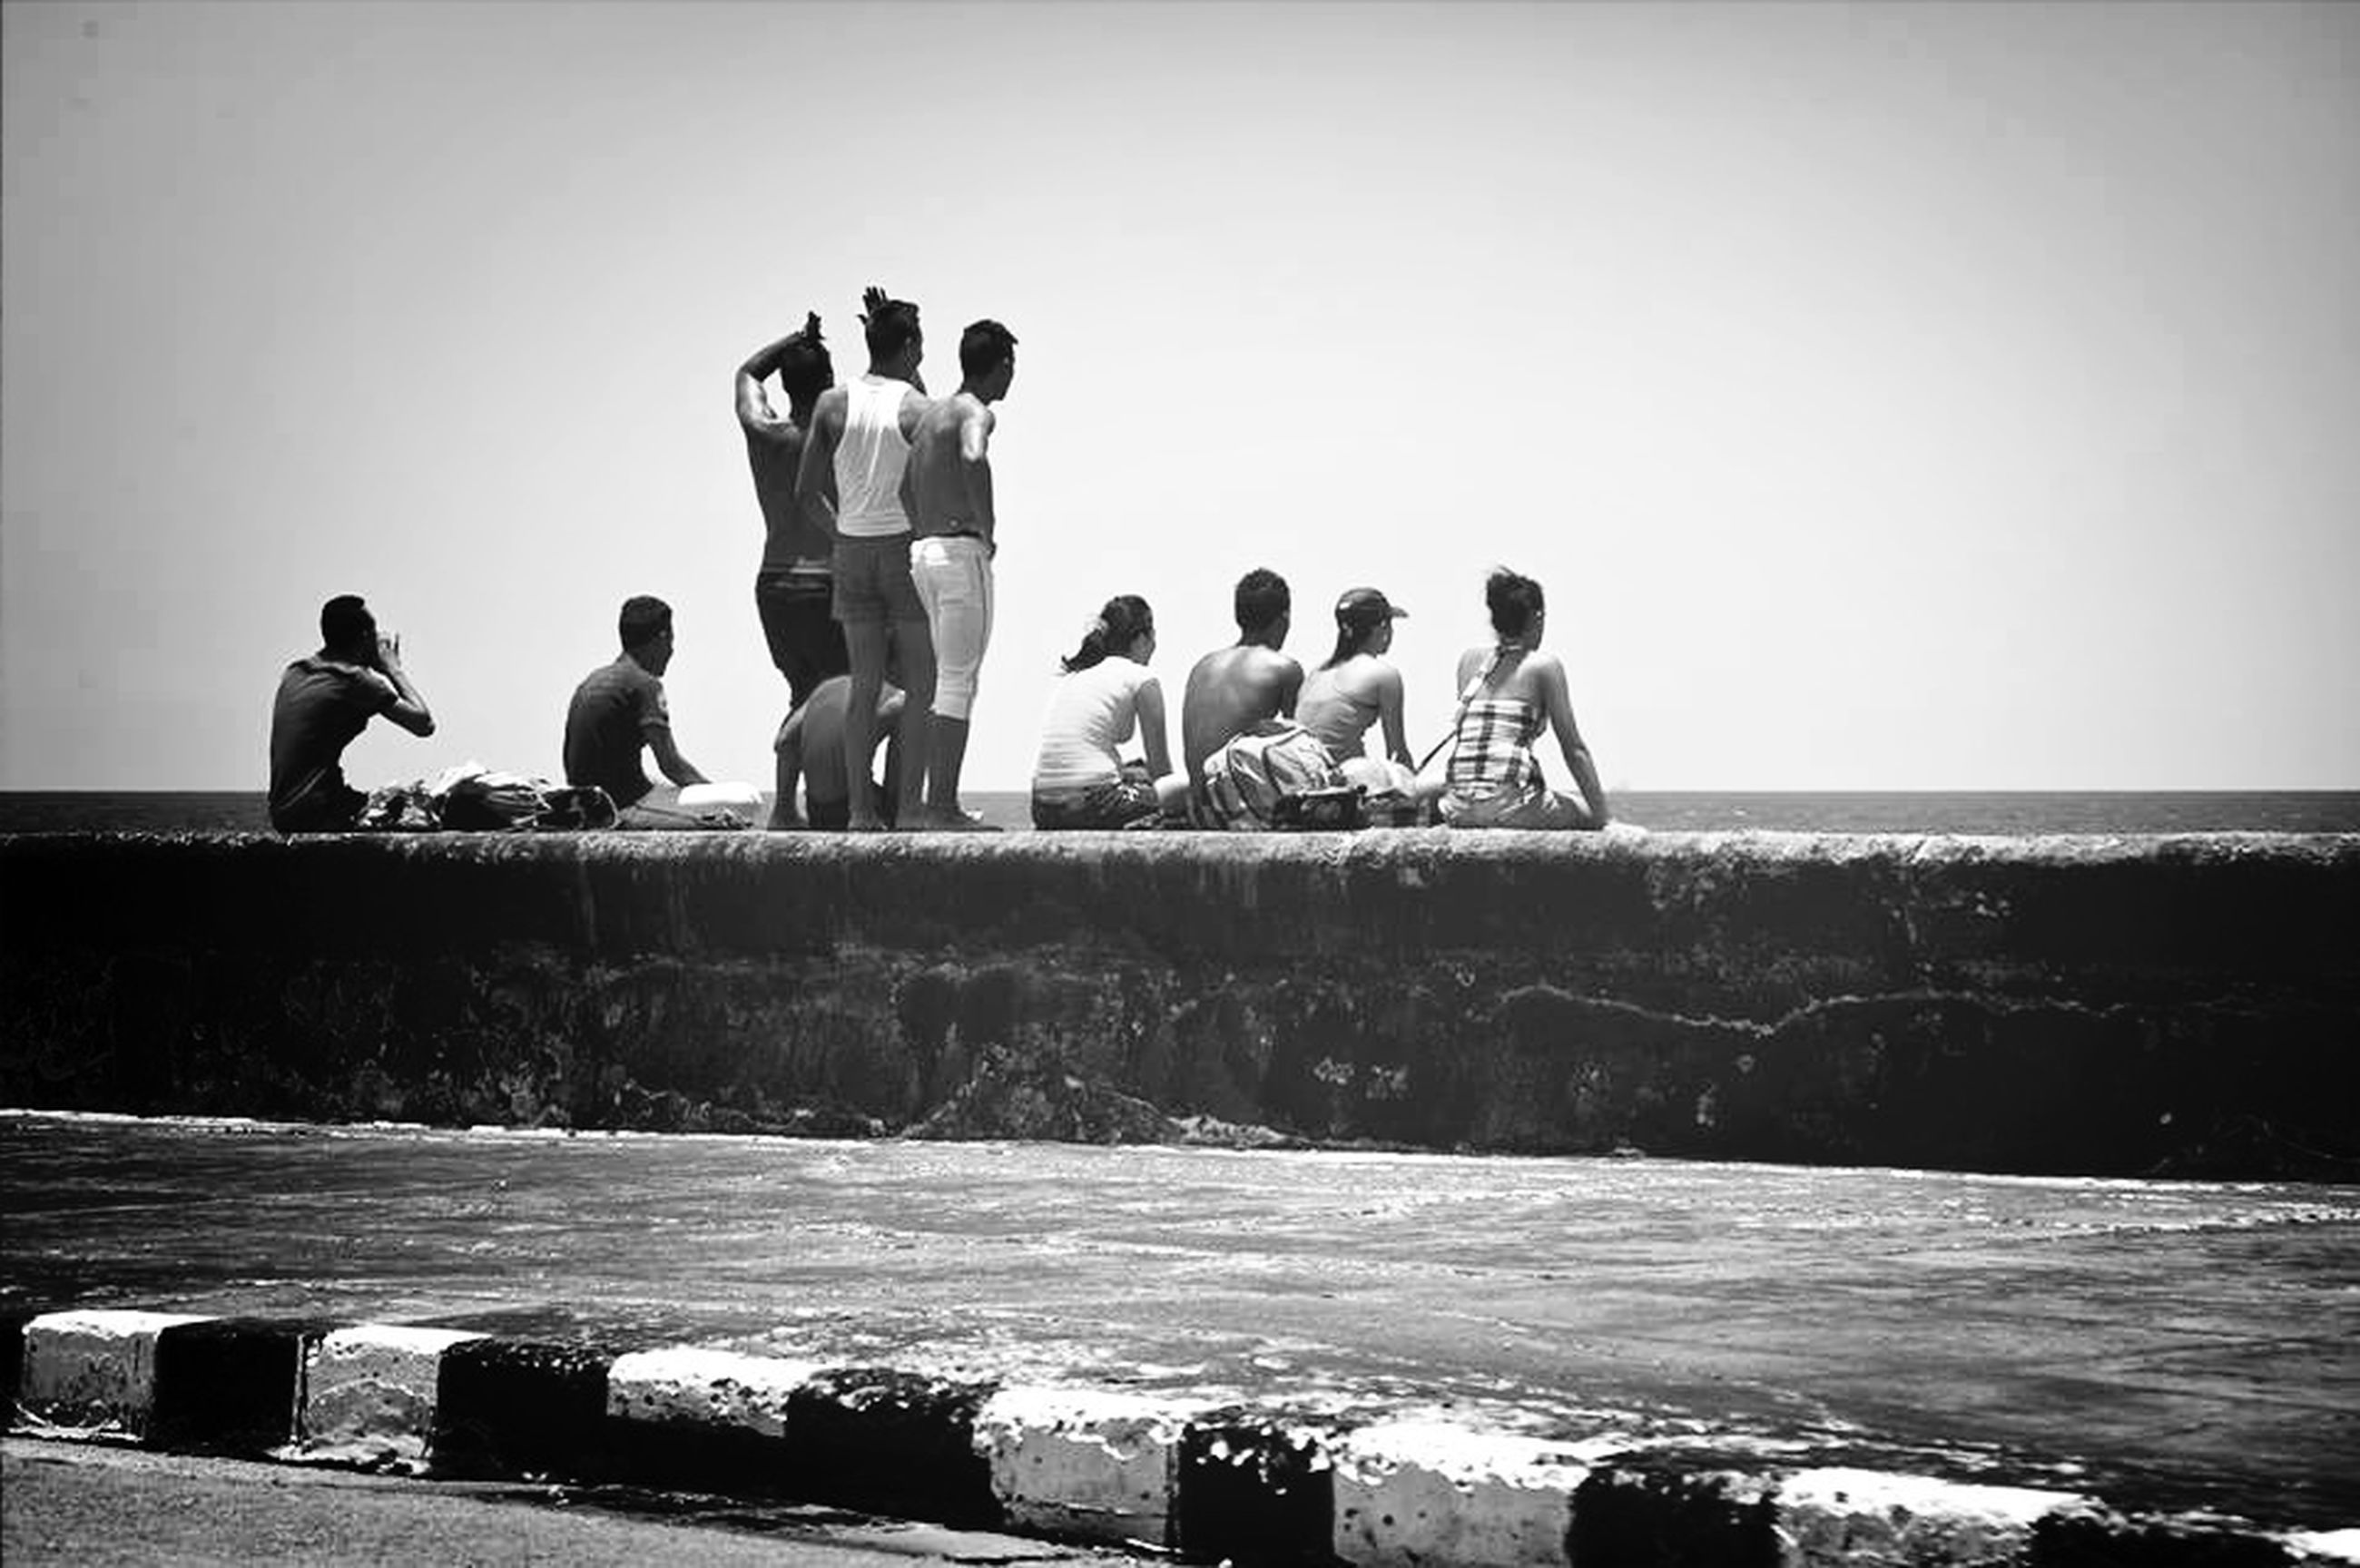 men, water, clear sky, togetherness, copy space, lifestyles, person, leisure activity, sea, friendship, medium group of people, standing, large group of people, bonding, pier, railing